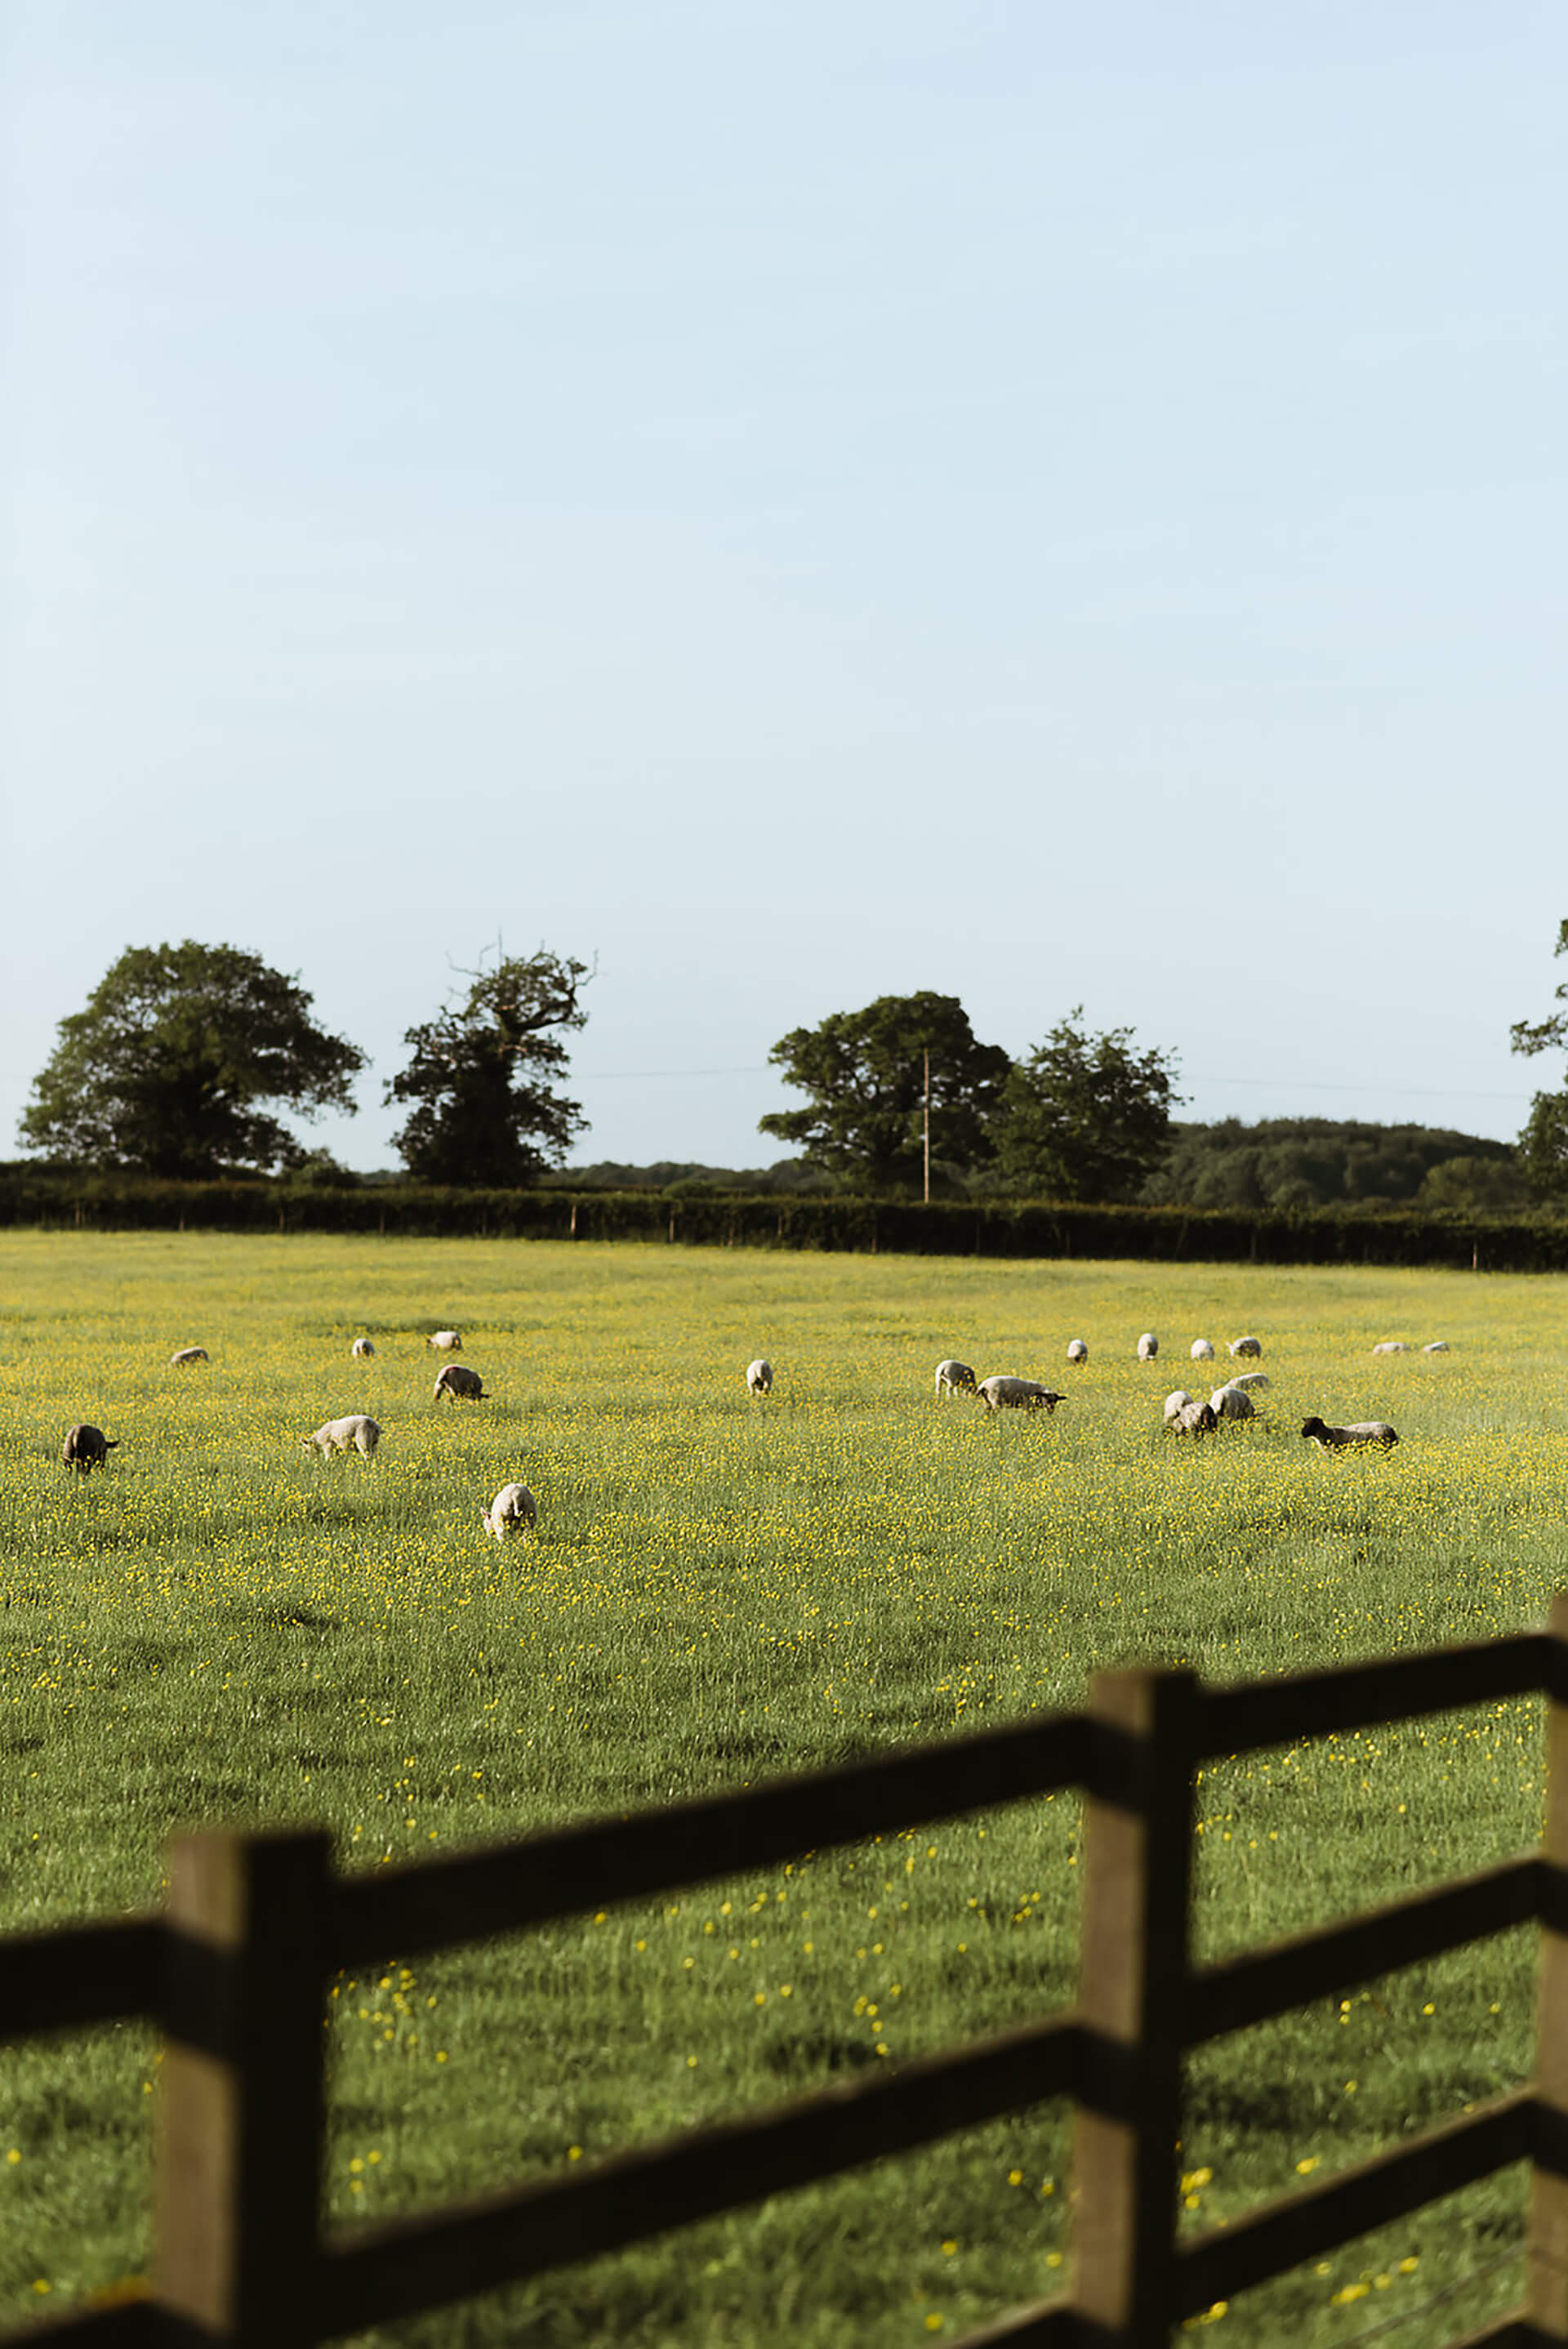 "Our lovely flock of sheep, grazing in the sunshine. Photo by <a href=""http://www.alexandraholtphotography.com/"" target=""_blank"">Alexandra Holt</a>"